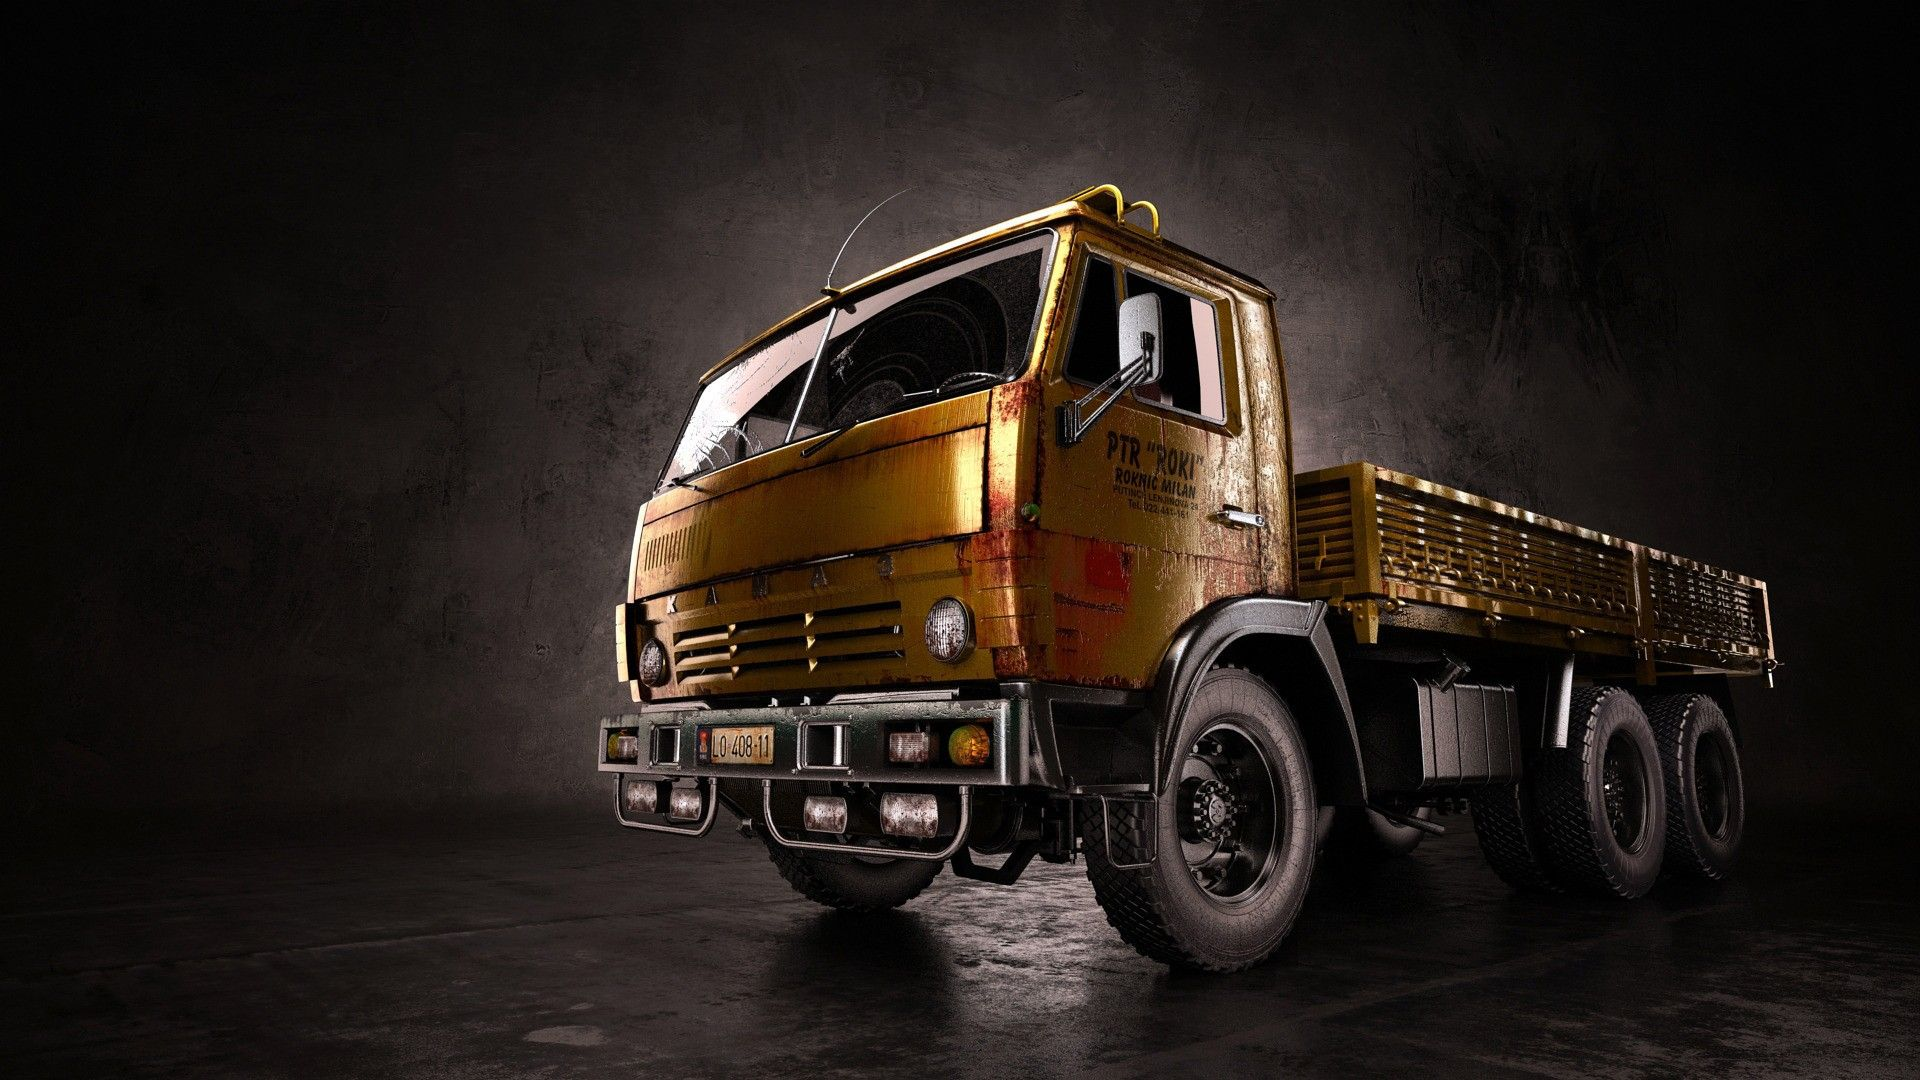 Absolutely Stunning Truck Wallpapers in HD 1920×1080 Truck